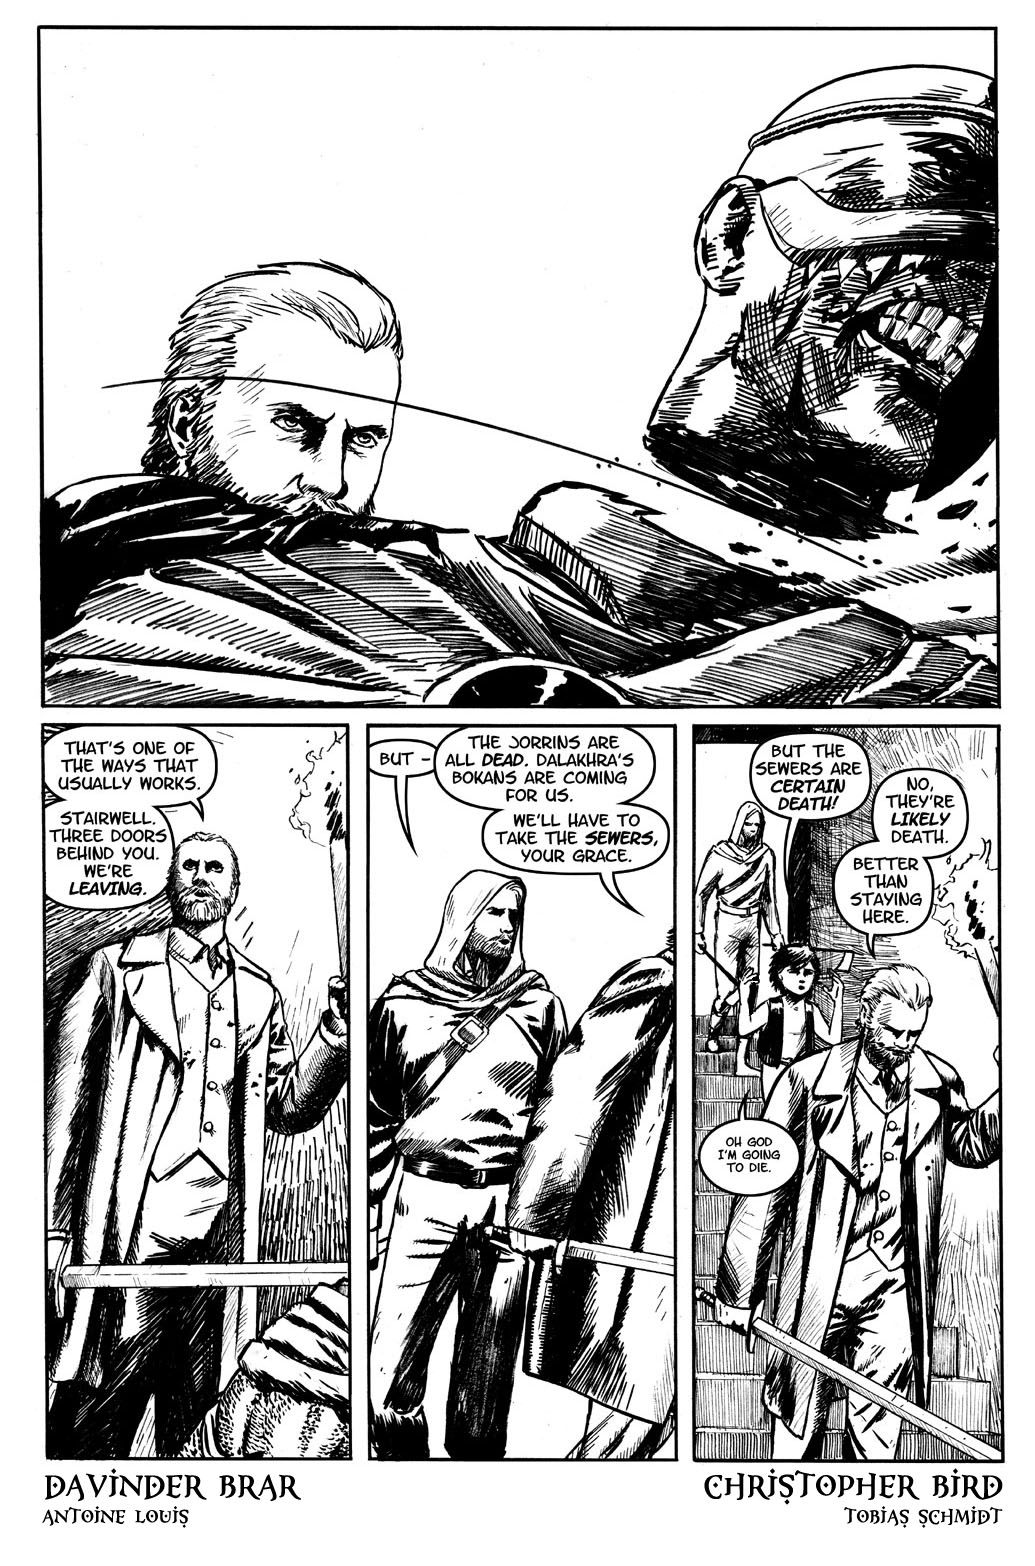 Book 3, page 26